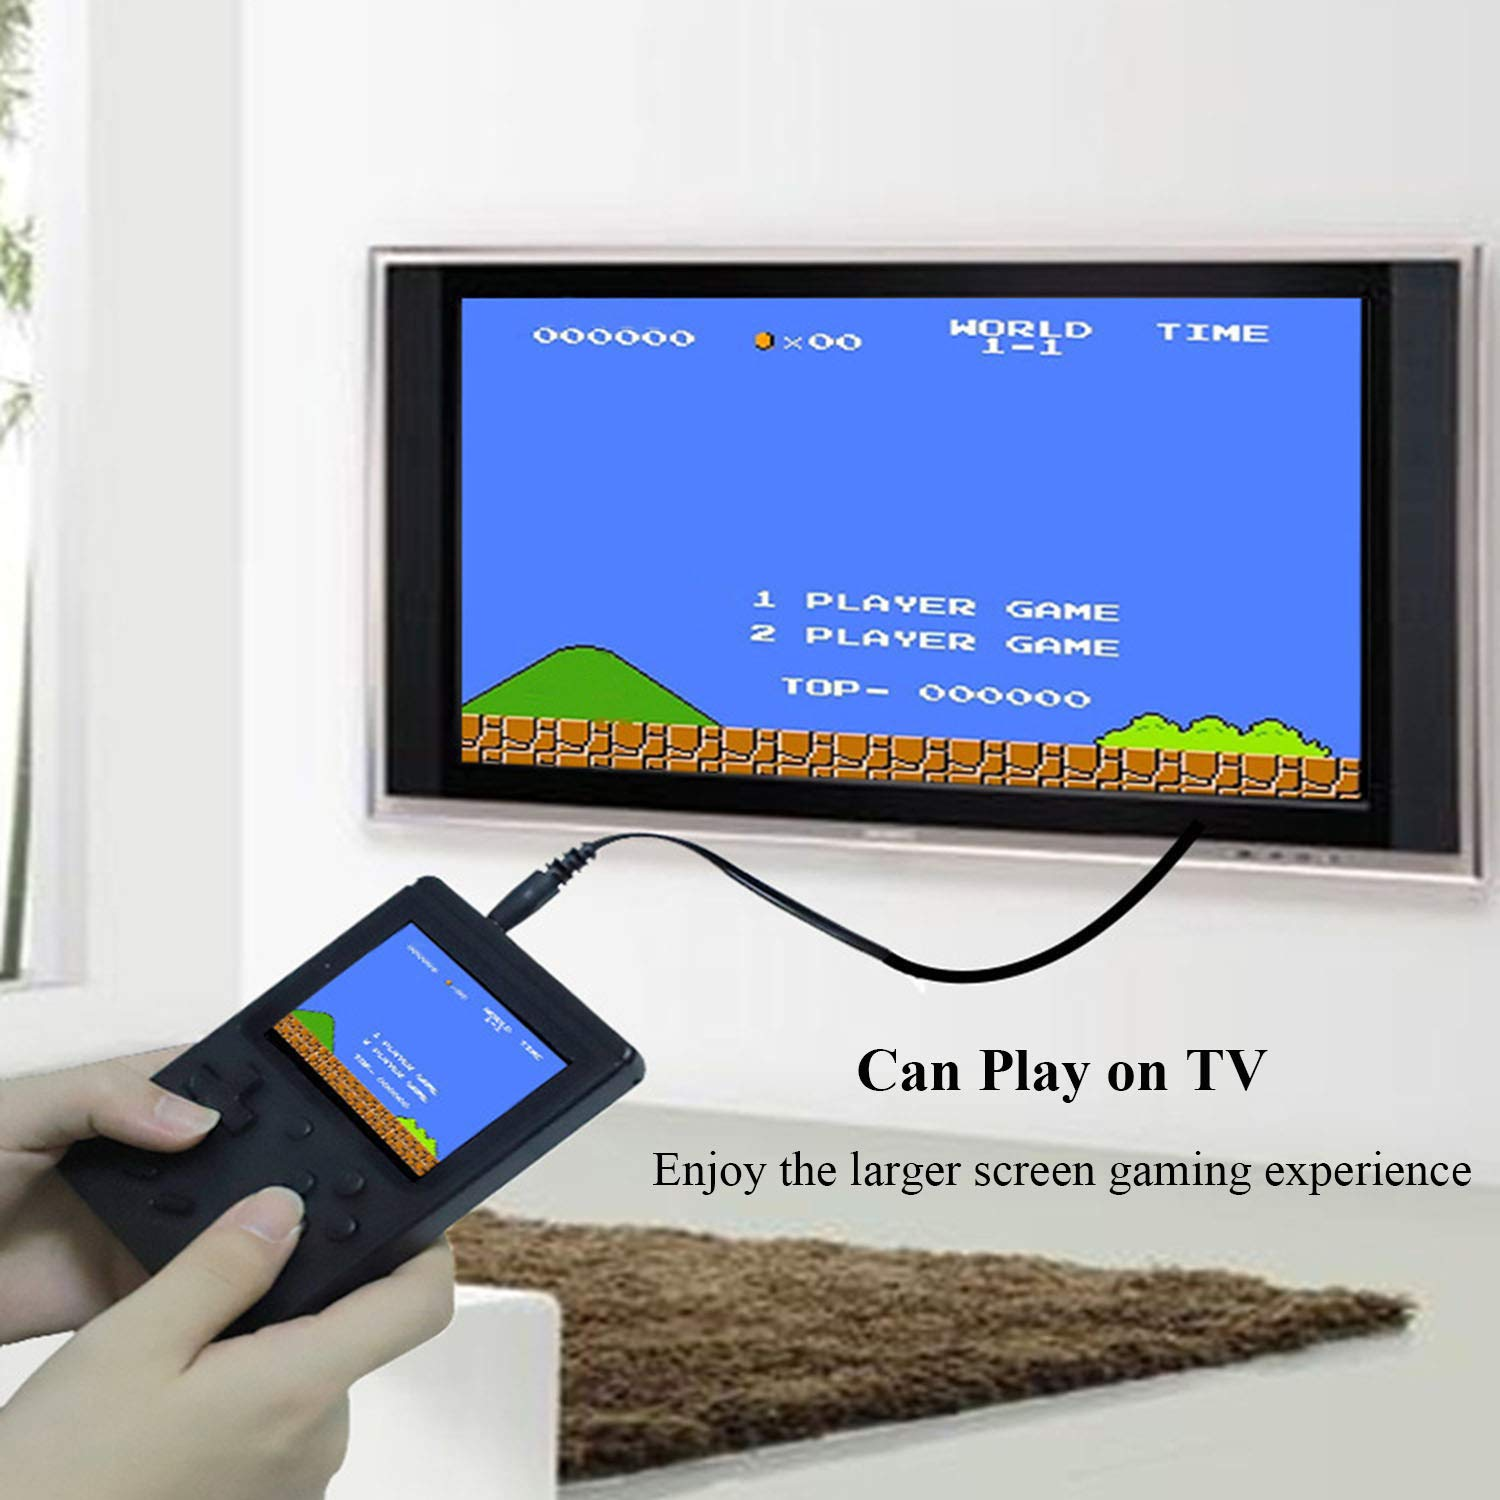 JAFATOY Retro Handheld Games Console - 168 Classic Games 8 Bit Games 3 inch Screen Video Games with AV Cable Play on TV (Black) by JAFATOY (Image #5)